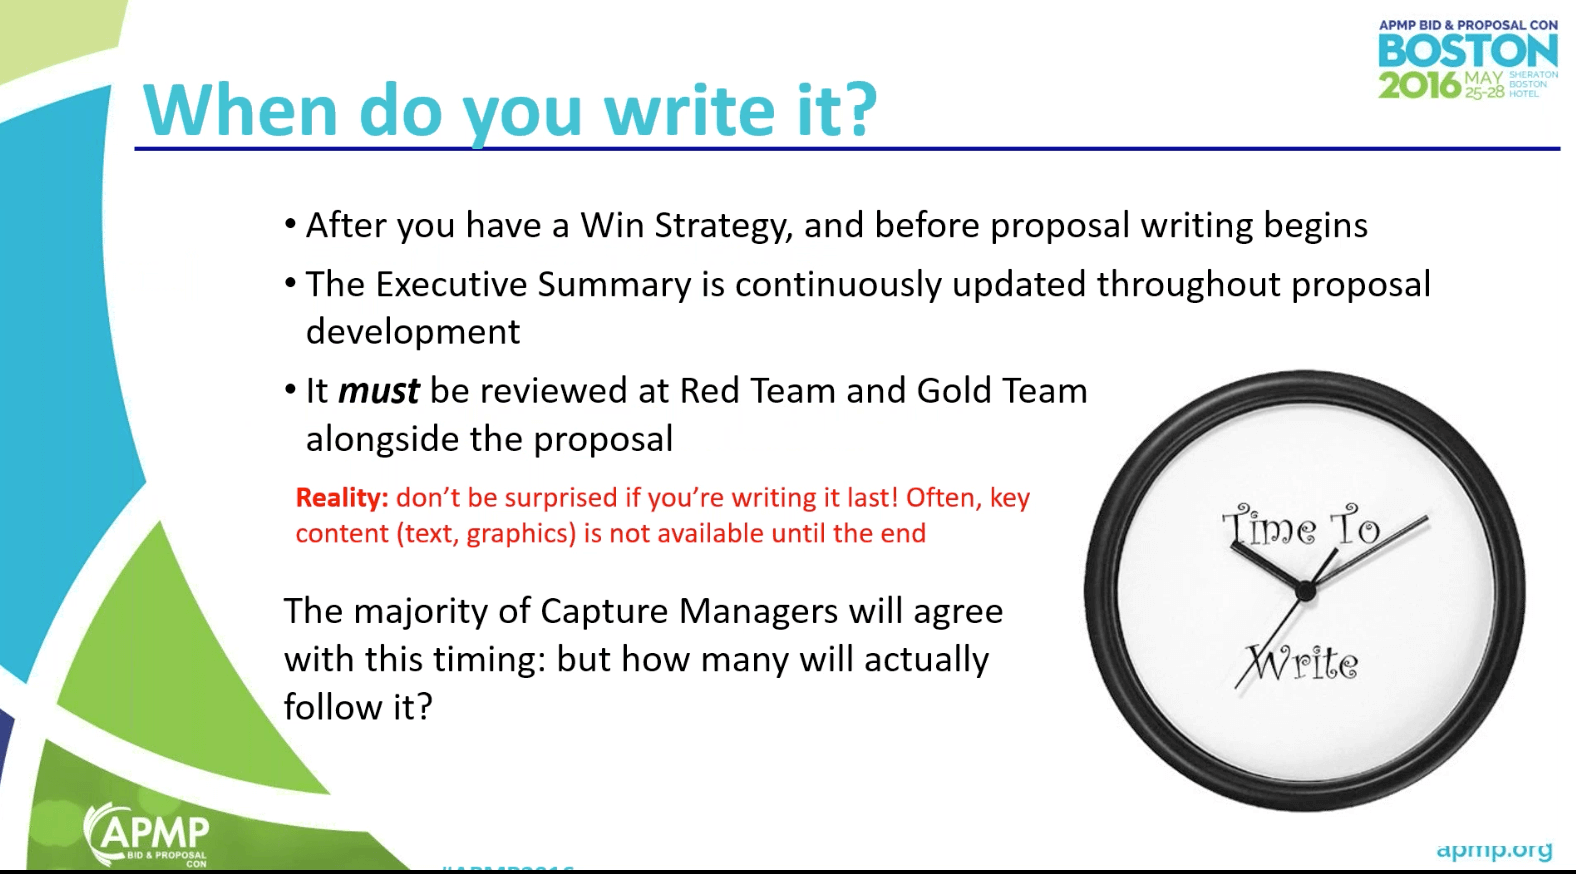 Request For Proposal Content  Best Executive Summary